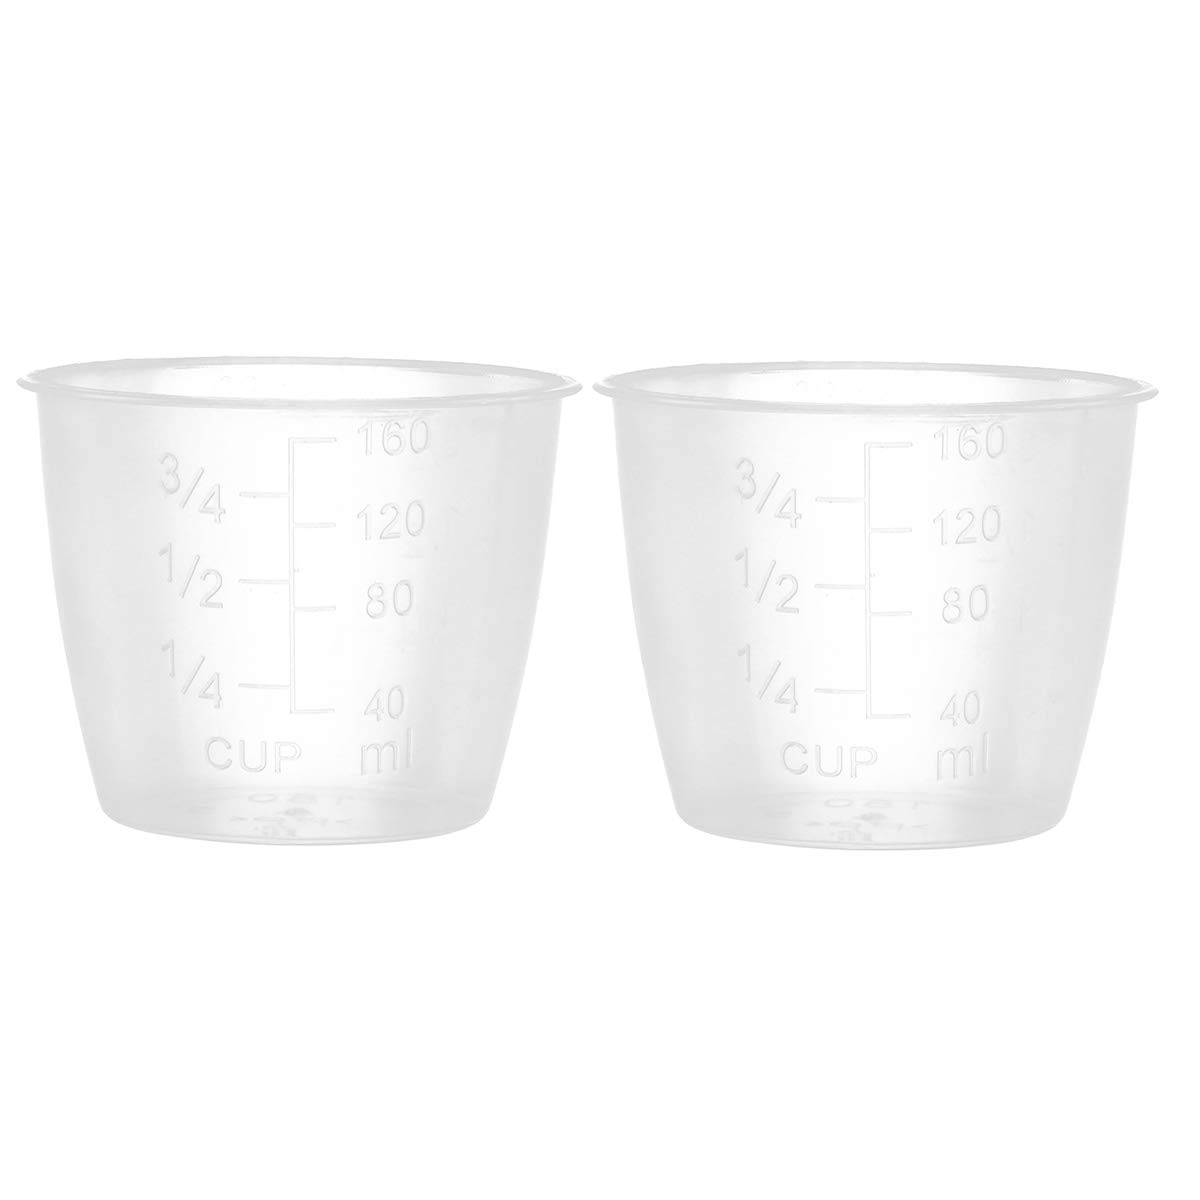 CHICTRY Rice Measuring Cups Clear Plastic Electric Rice Cooker Replacement Cups Kitchen Supplies with Both standard and metric measurements 2 Pack One Size